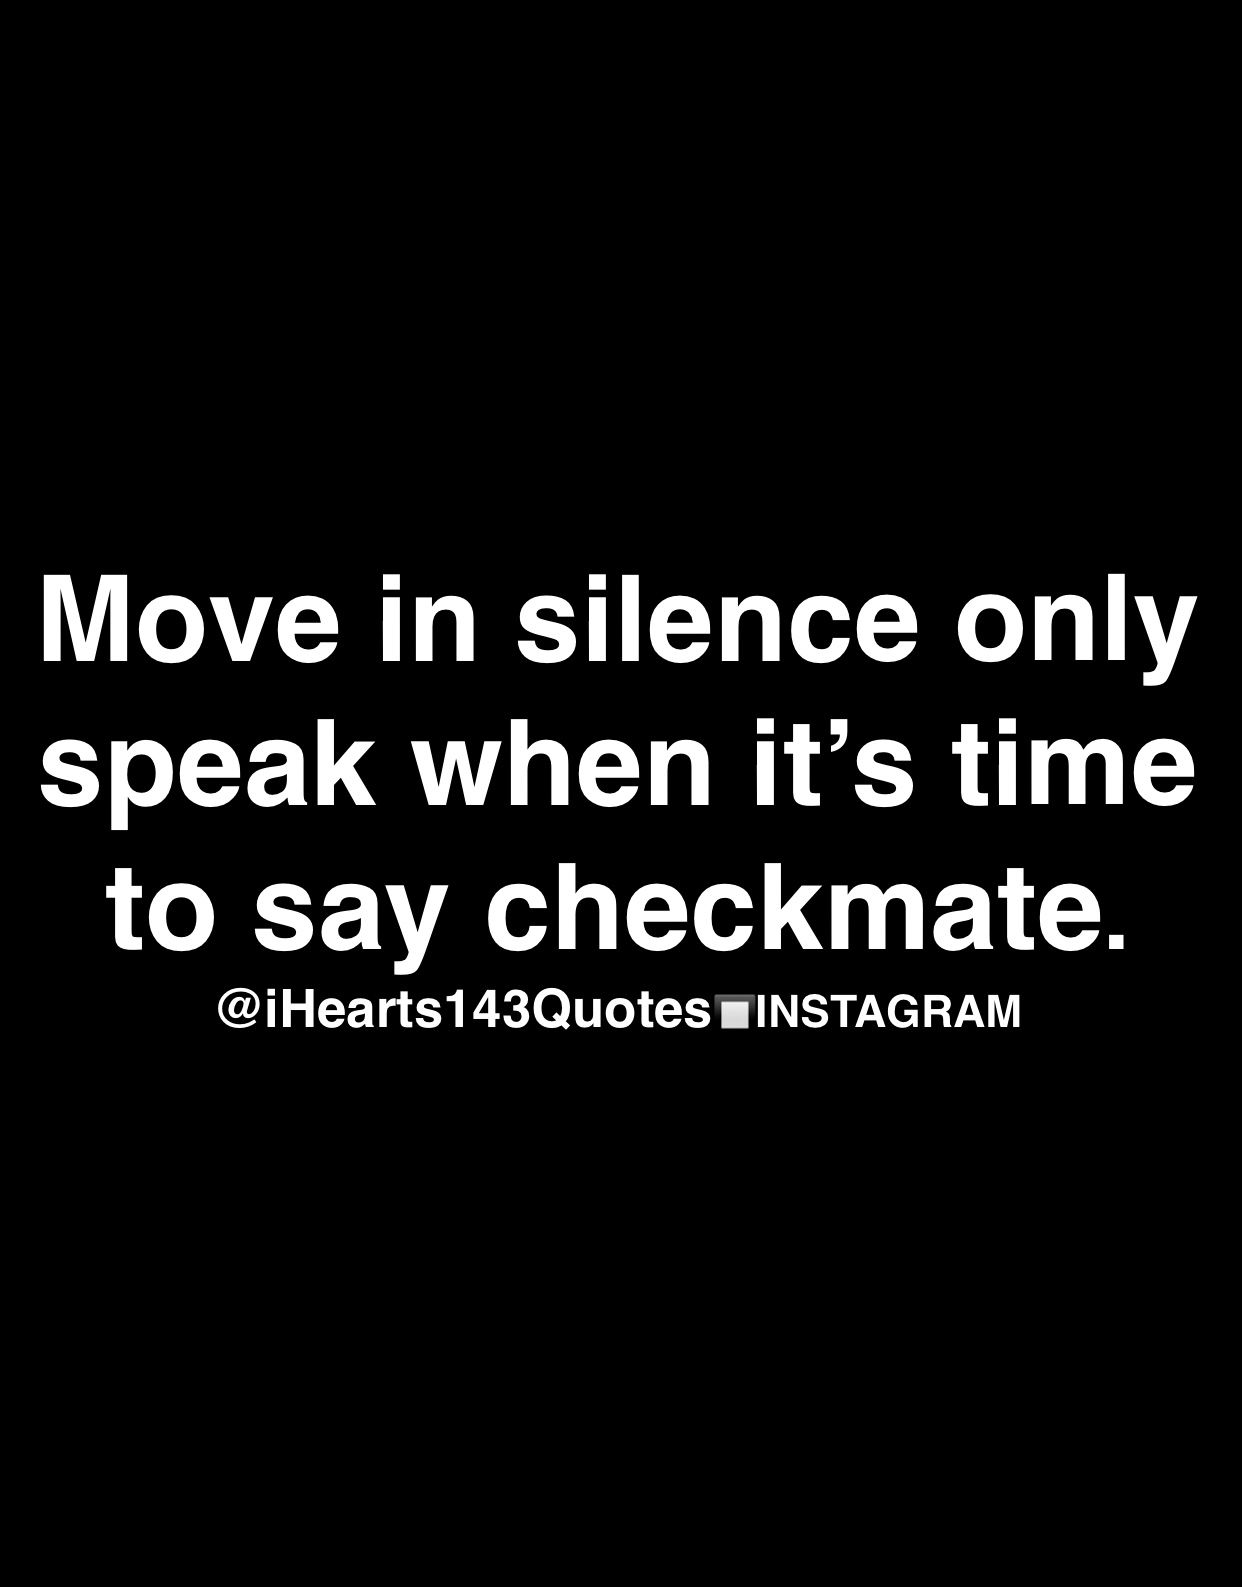 Daily motivational quotes ihearts143quotes daily motivational quotes mood quotes real life quotes